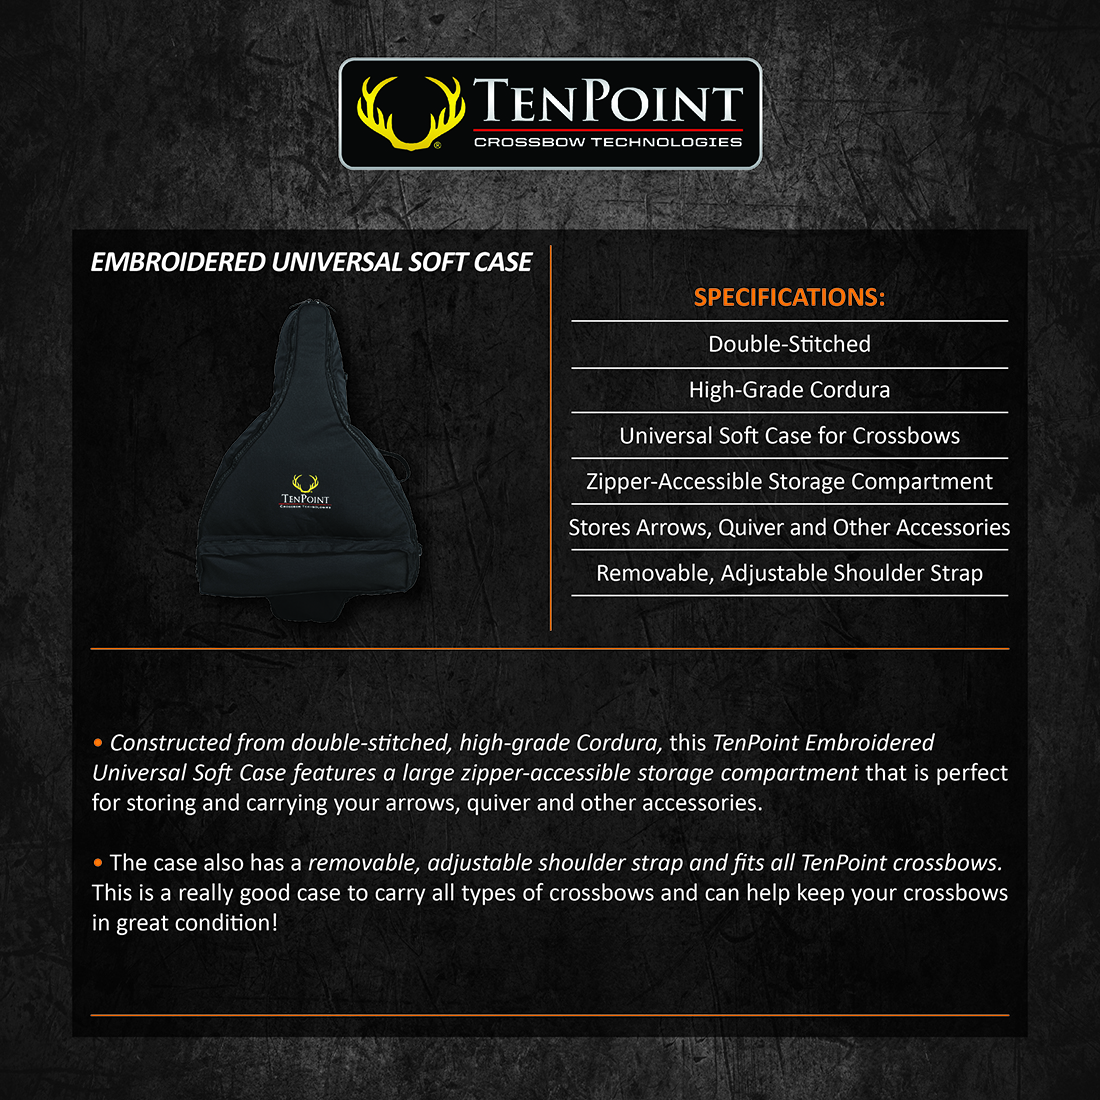 TenPoint_Universal_Soft_Case_Product_Description